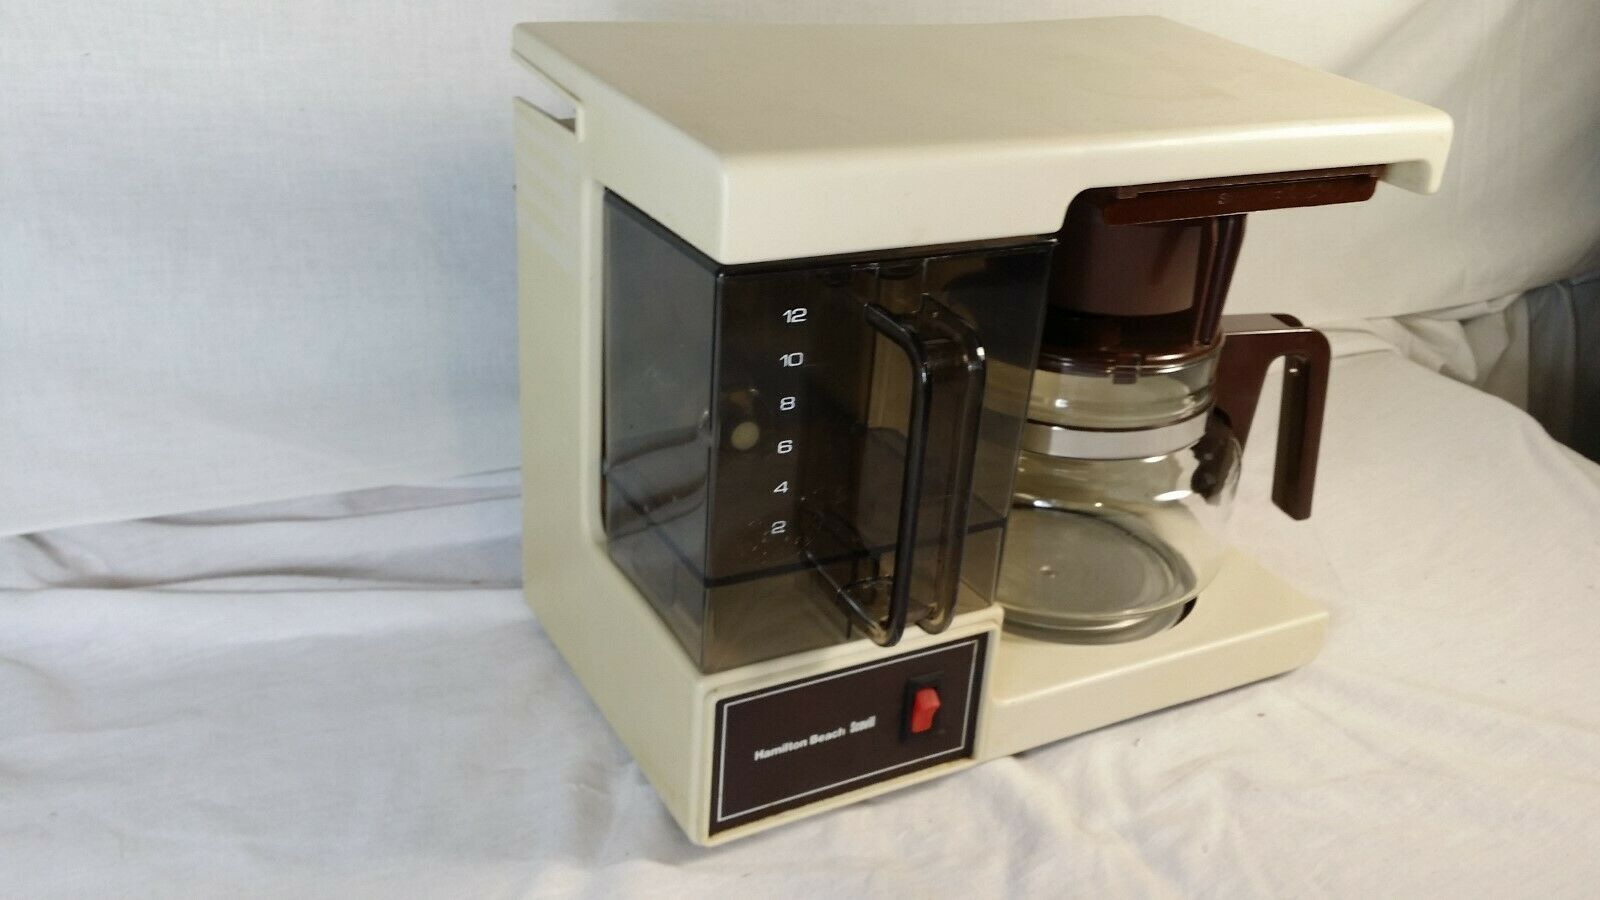 Vintage Space Saver Under Cabinet Coffee Maker Hamilton Beach 12 Cup U.S.A. Made